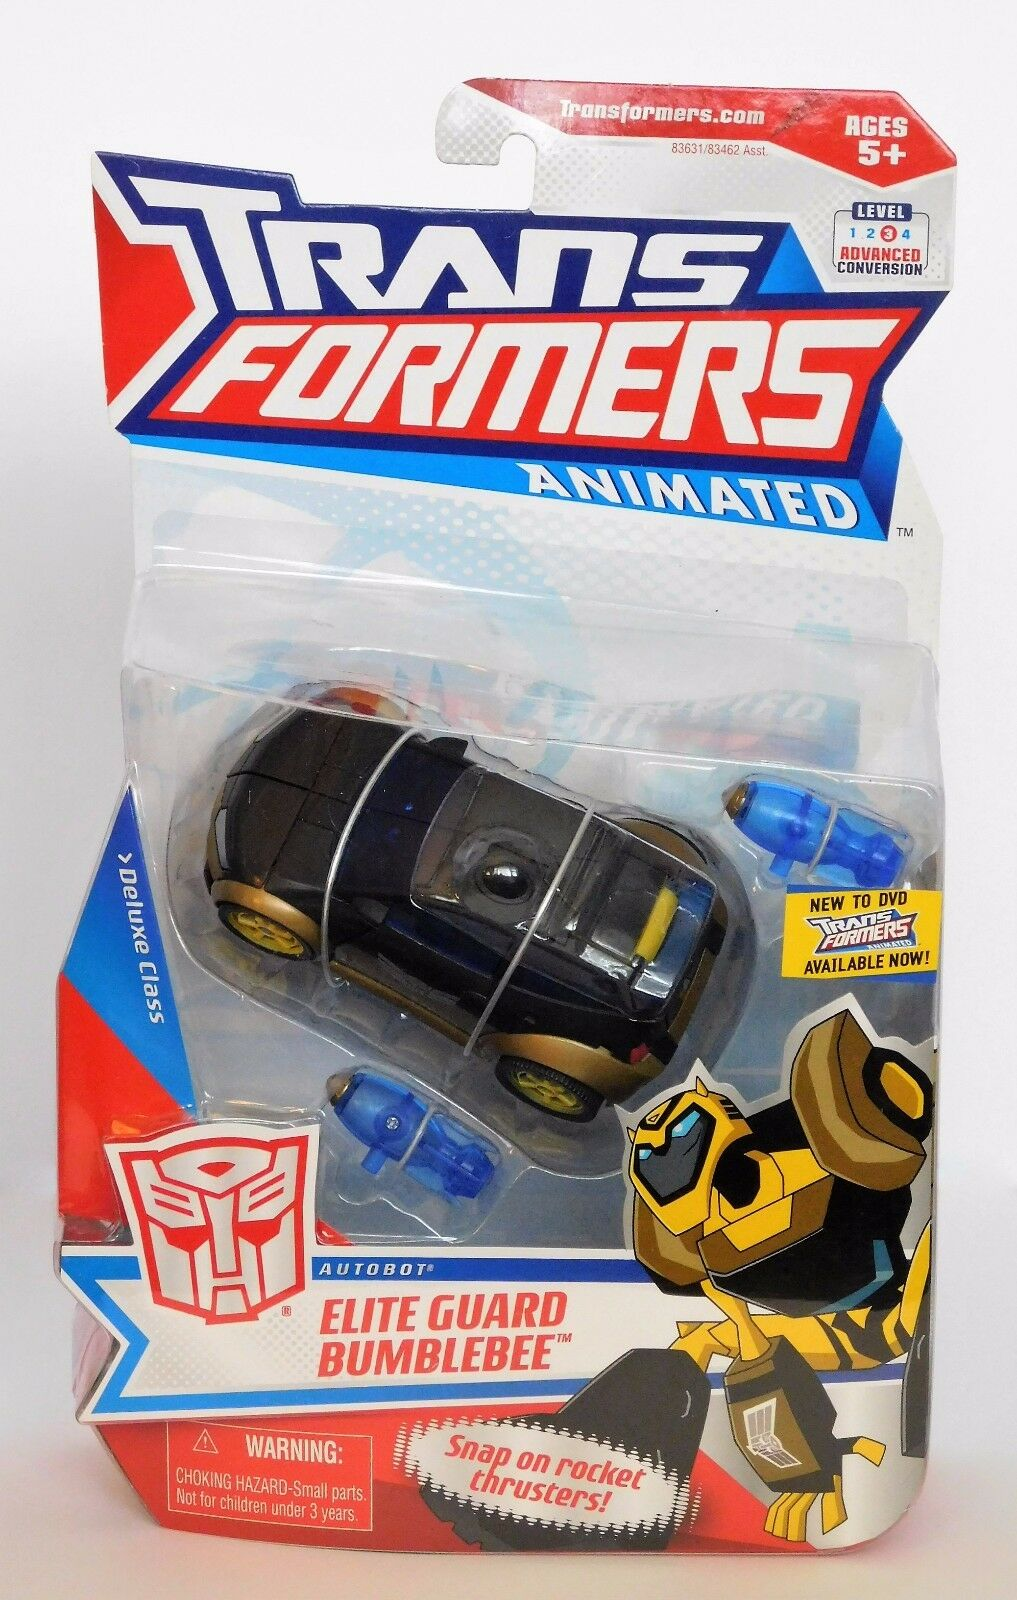 2008 TRANSFORMERS ANIMATED ELITE GUARD BUMBLEBEE Autobot Deluxe Class L3_C8+ MOC